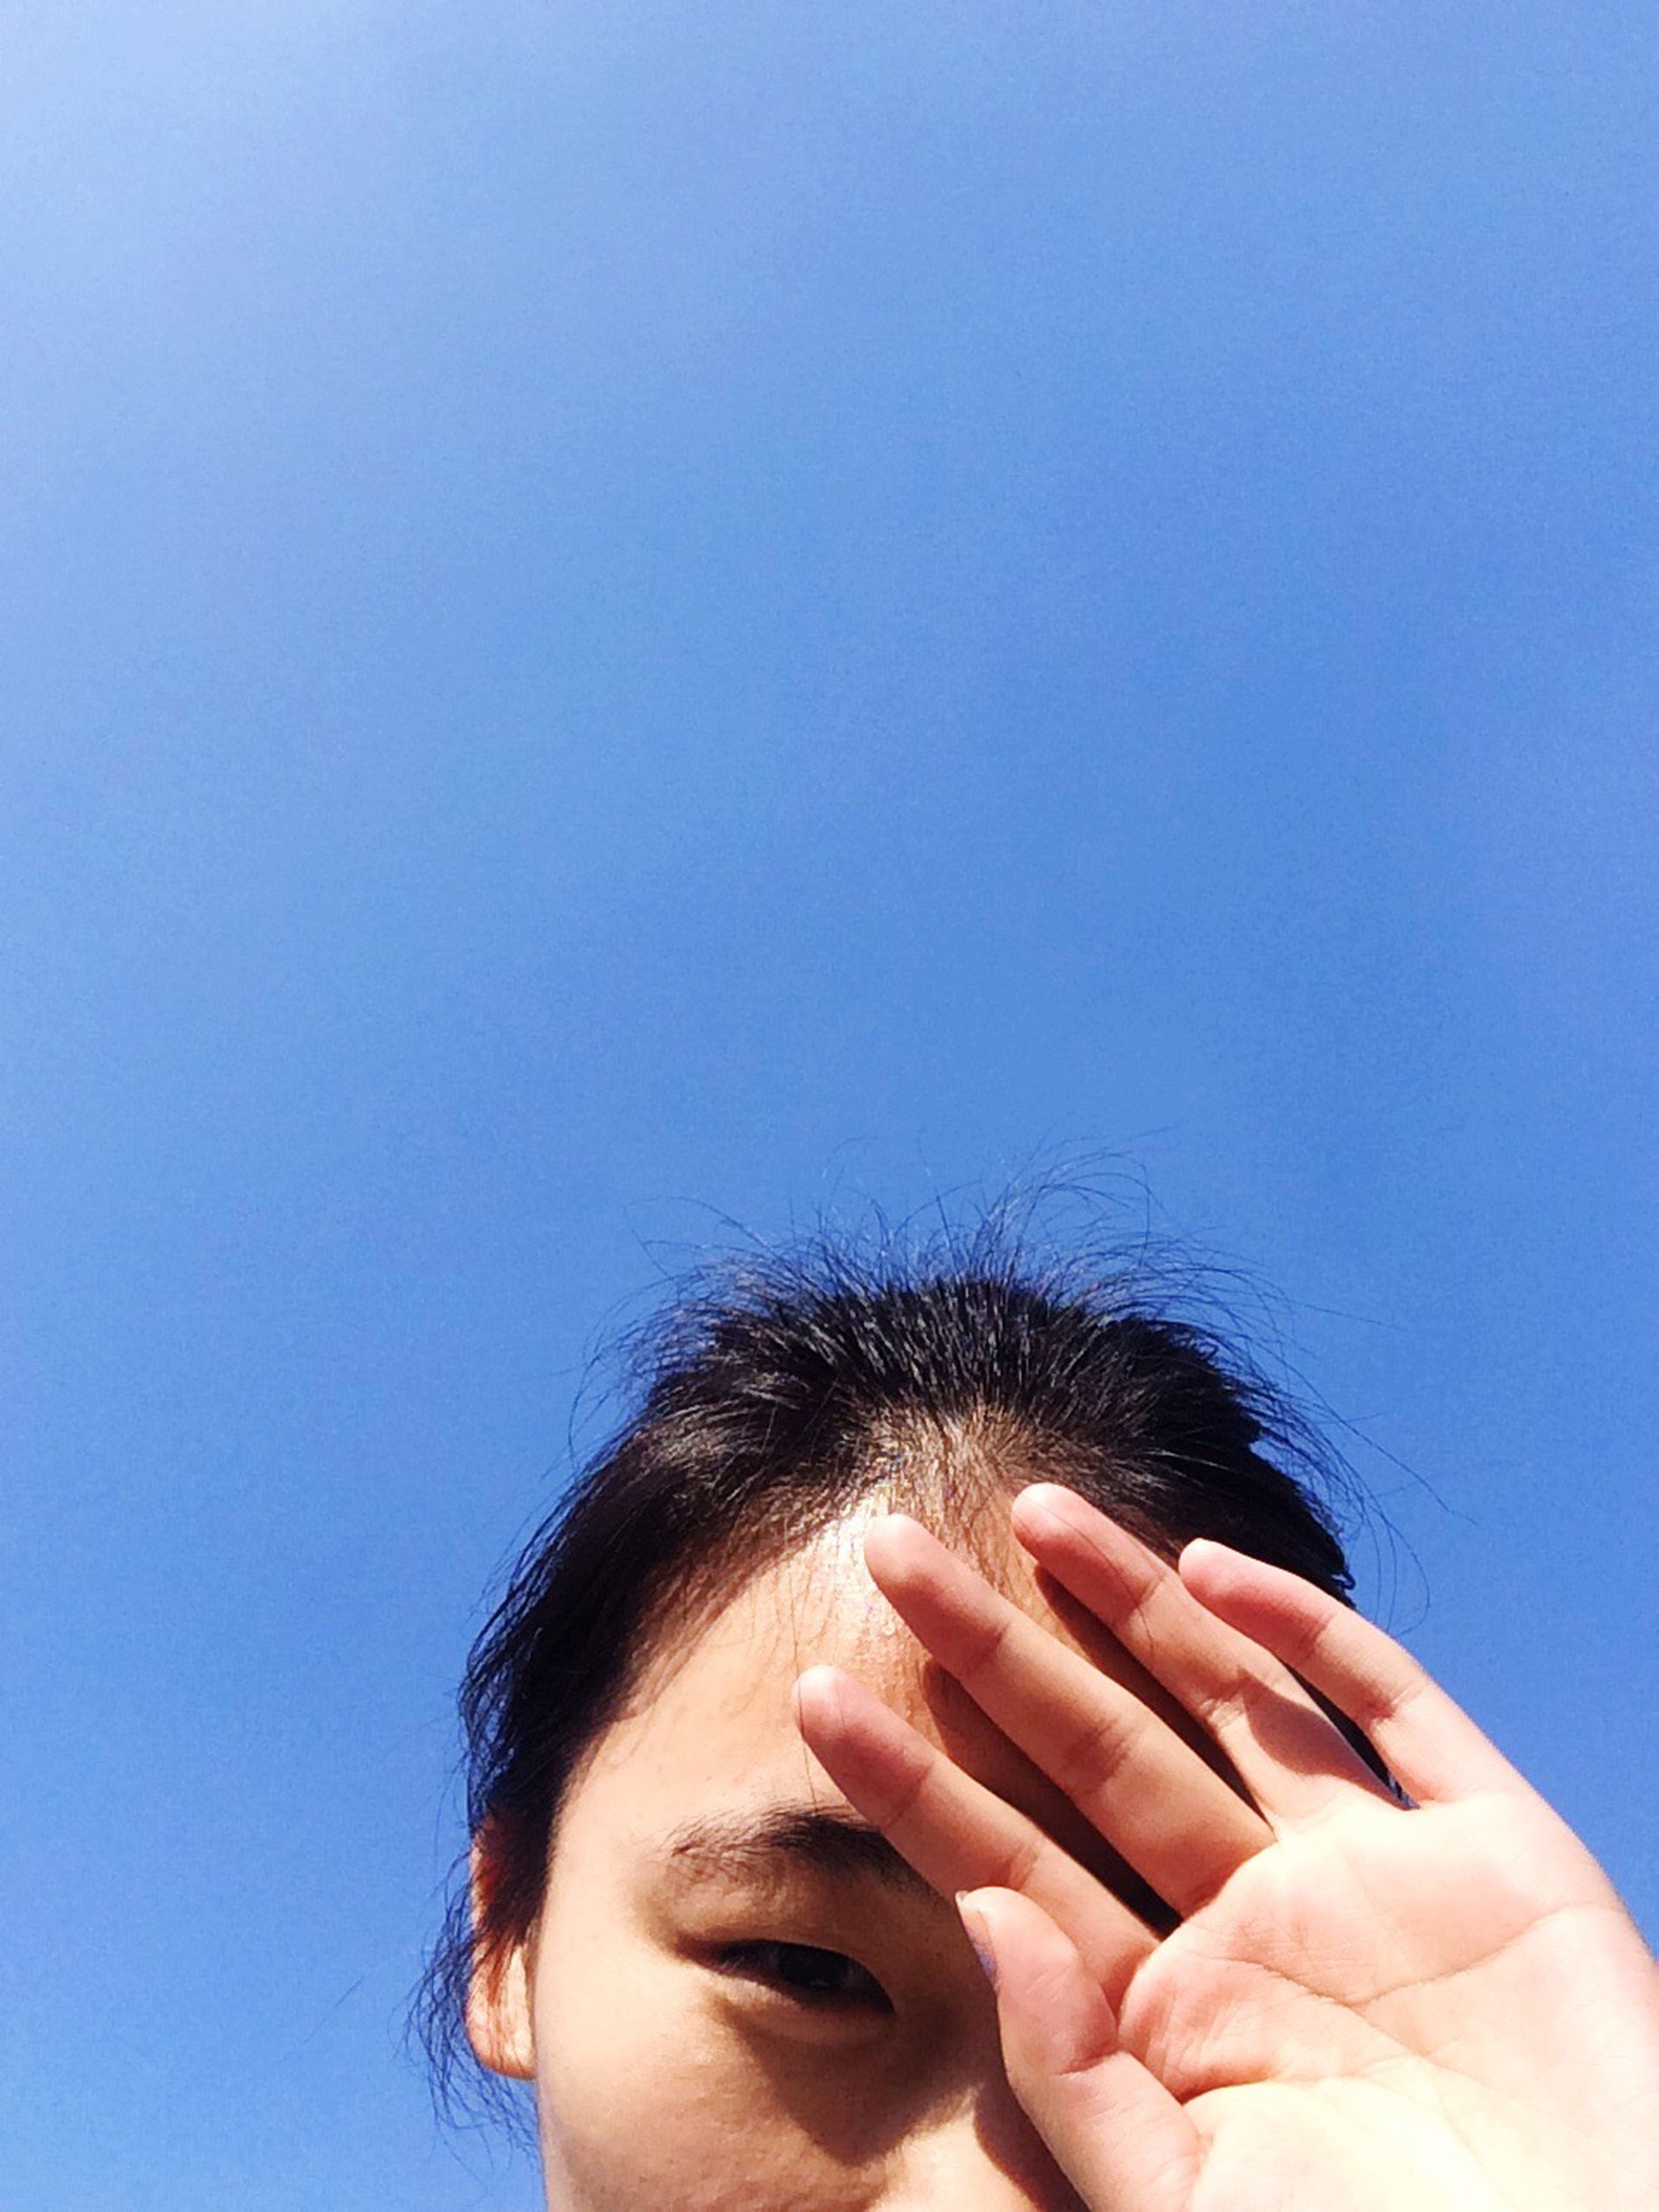 person, copy space, studio shot, white background, lifestyles, part of, close-up, headshot, cropped, clear sky, holding, leisure activity, human finger, blue, front view, human face, unrecognizable person